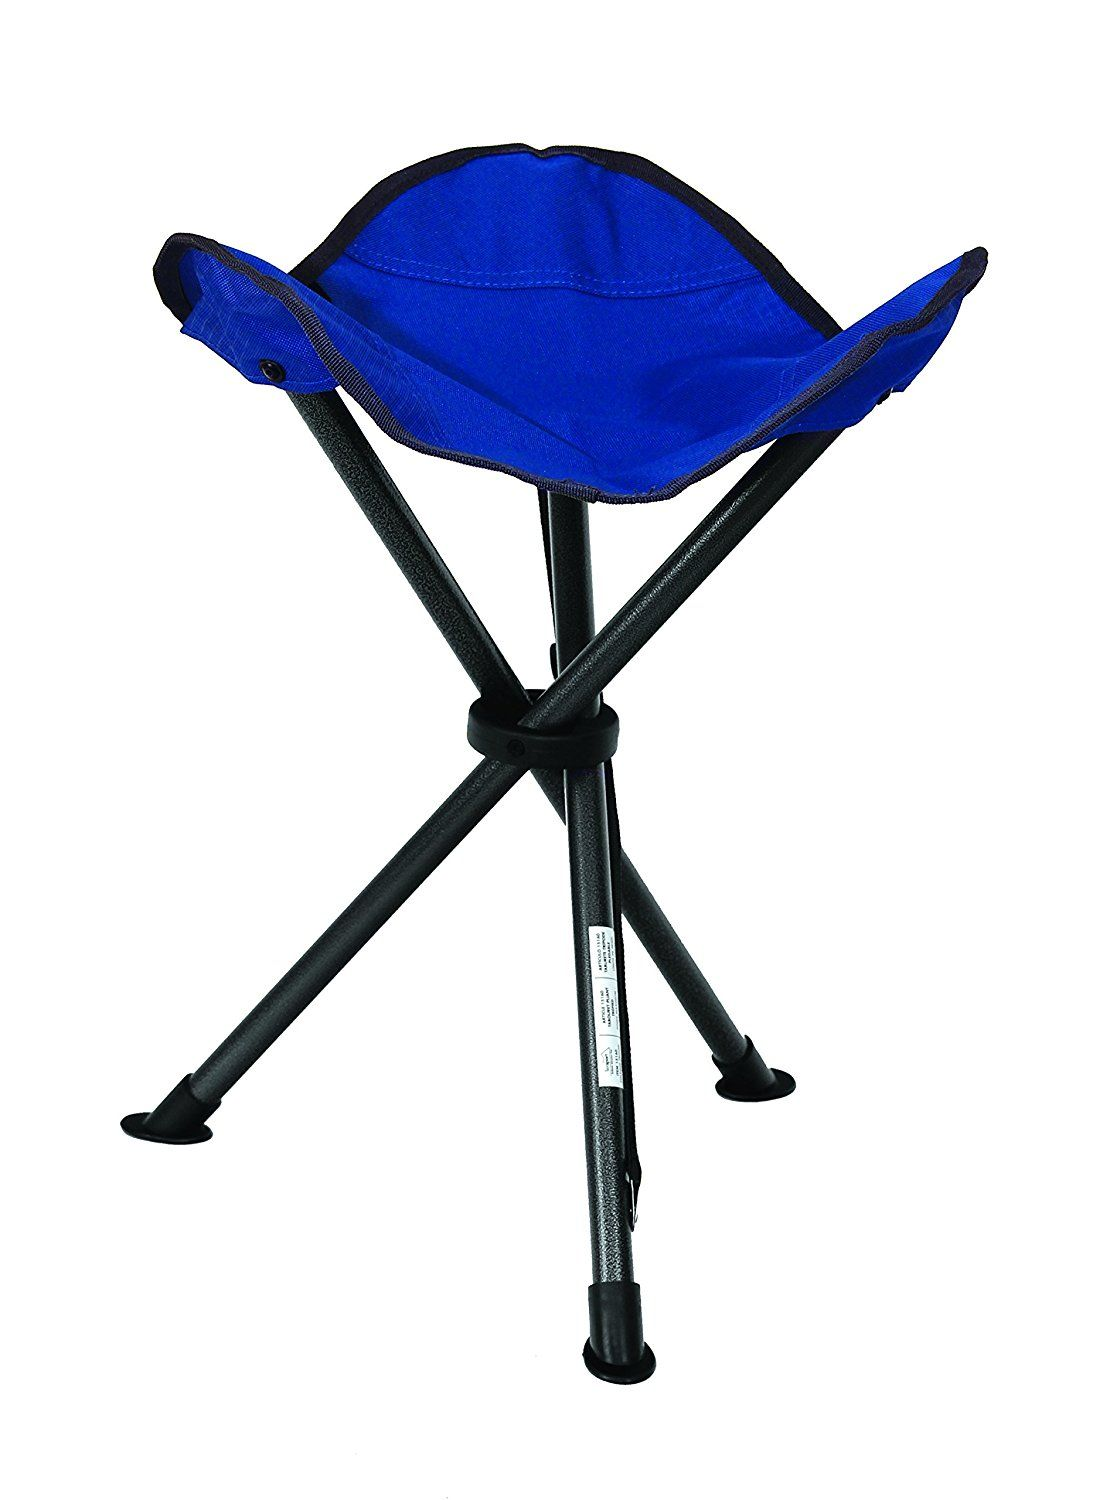 Texsport Portable Outdoor Folding Tripod Stool Check This